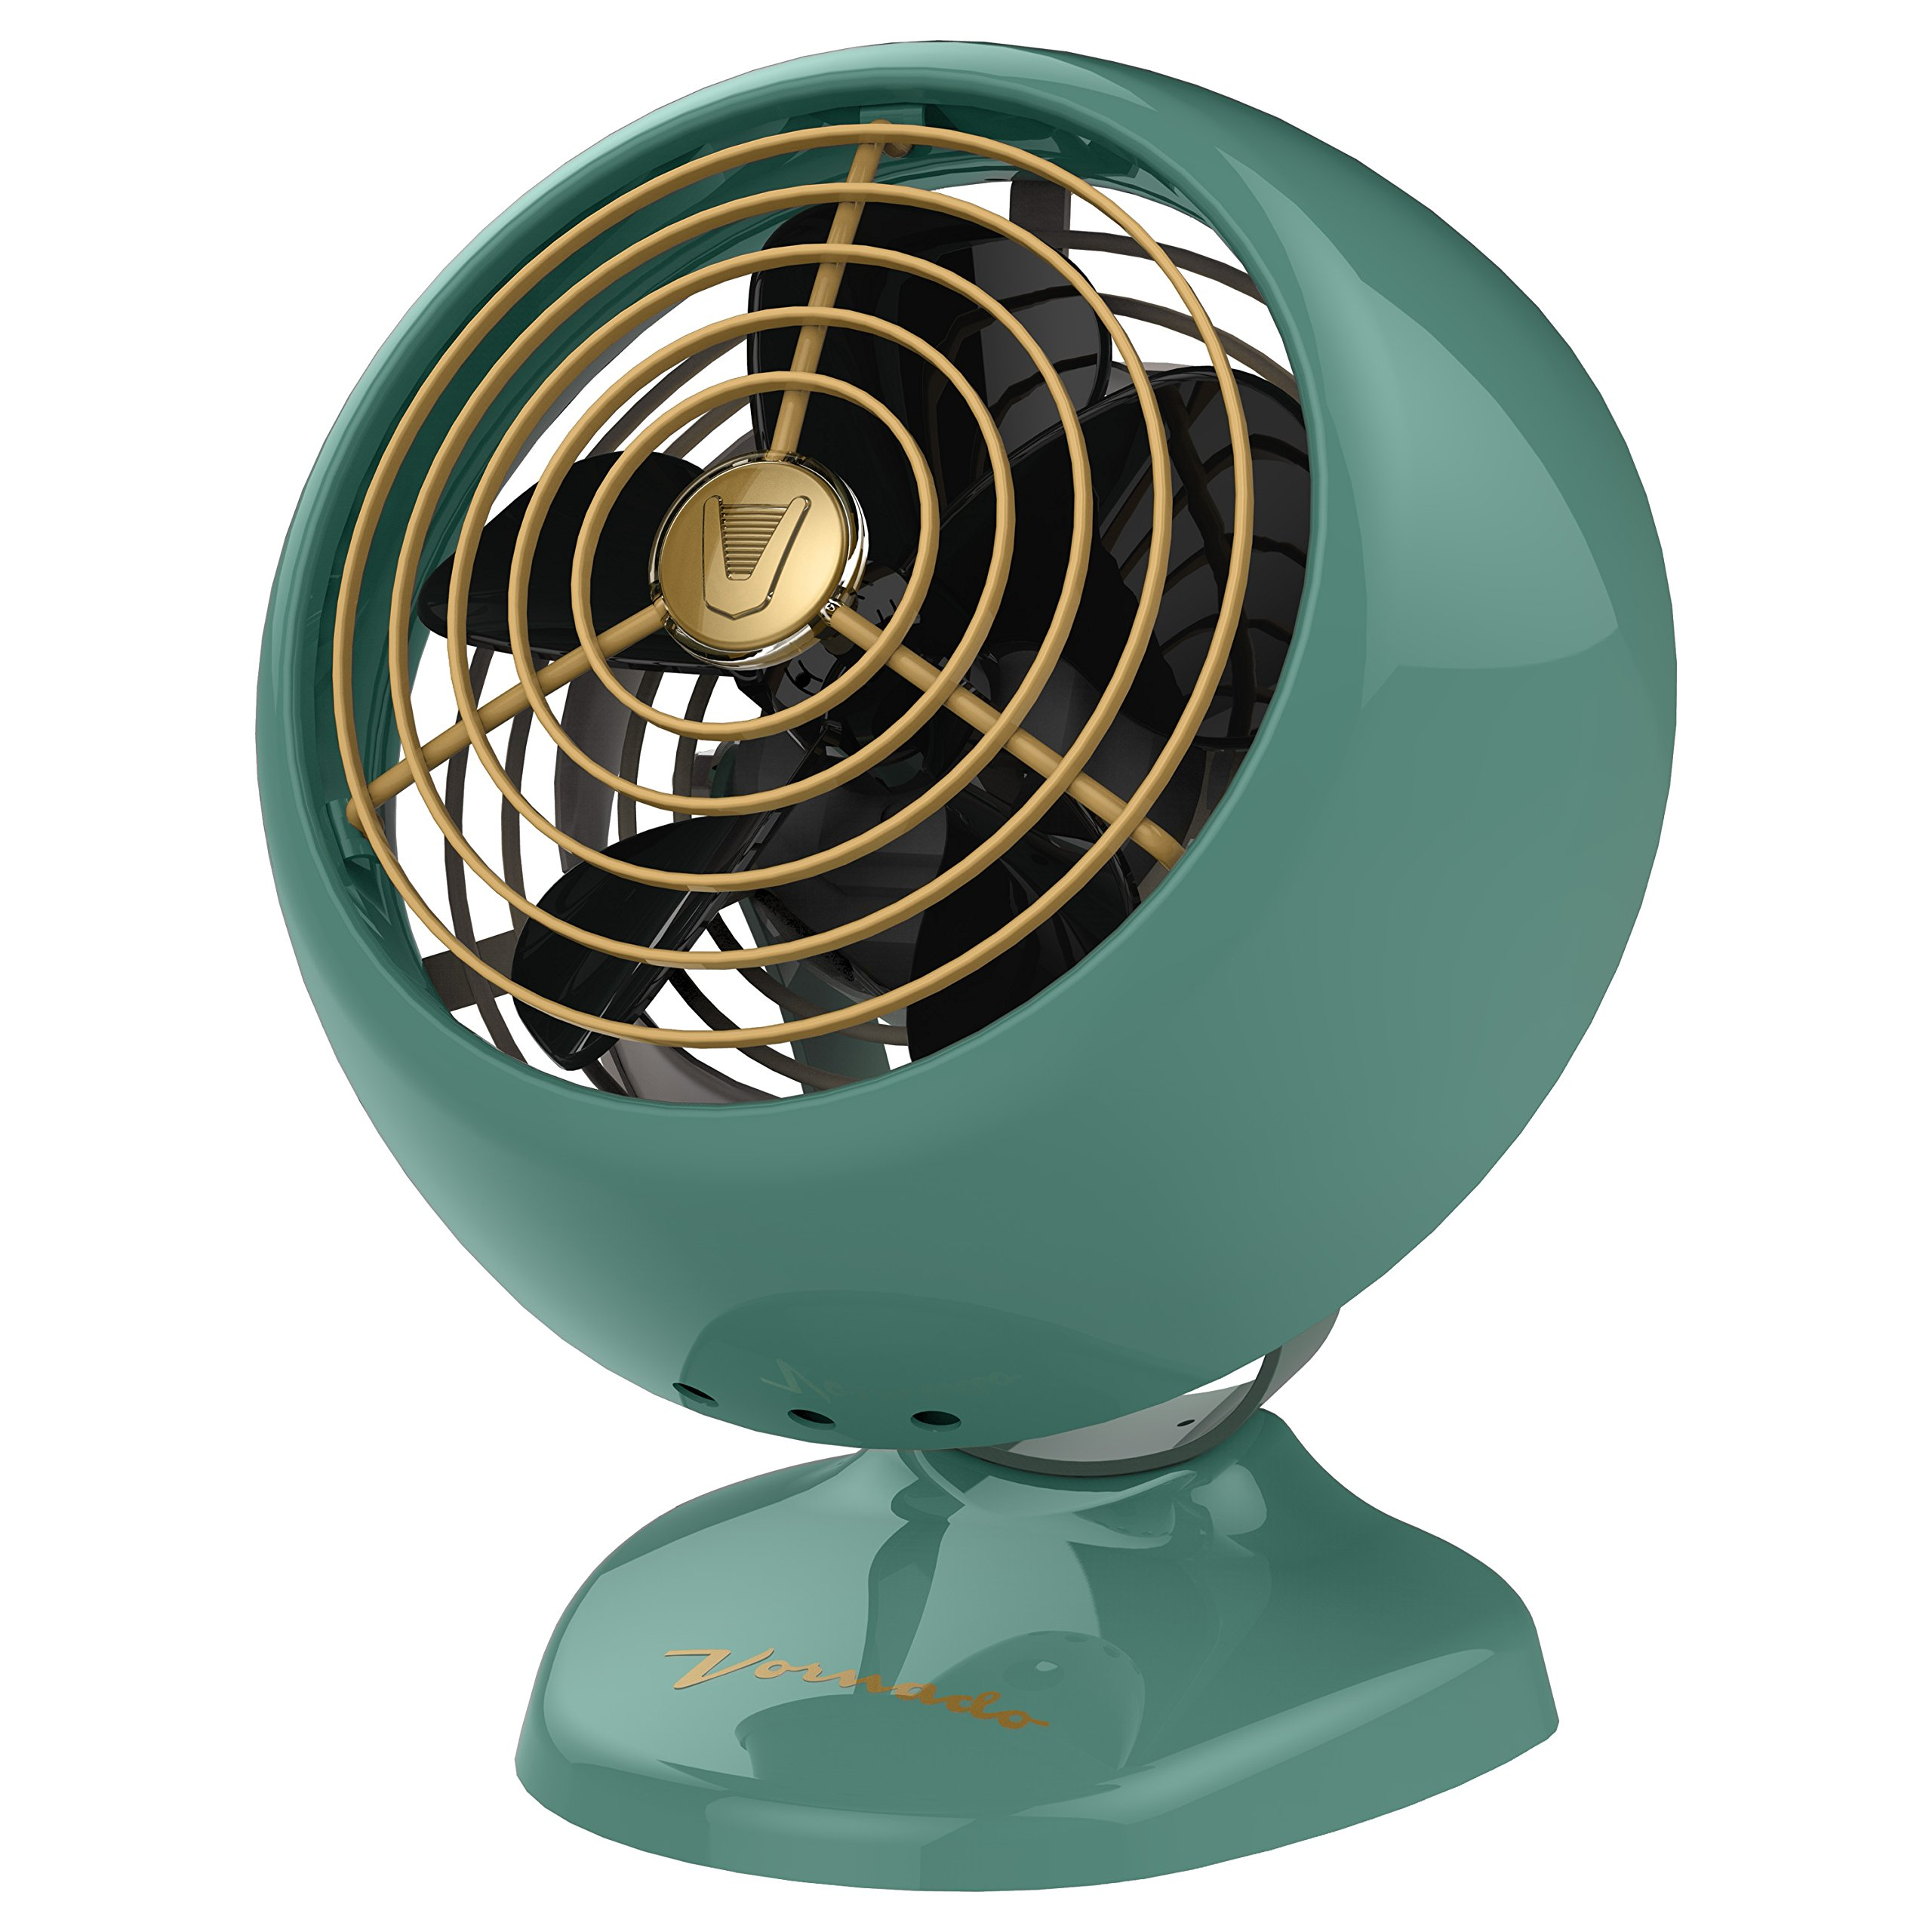 Vornado VFAN Mini Classic Personal Vintage Air Circulator Fan, Green by Vornado